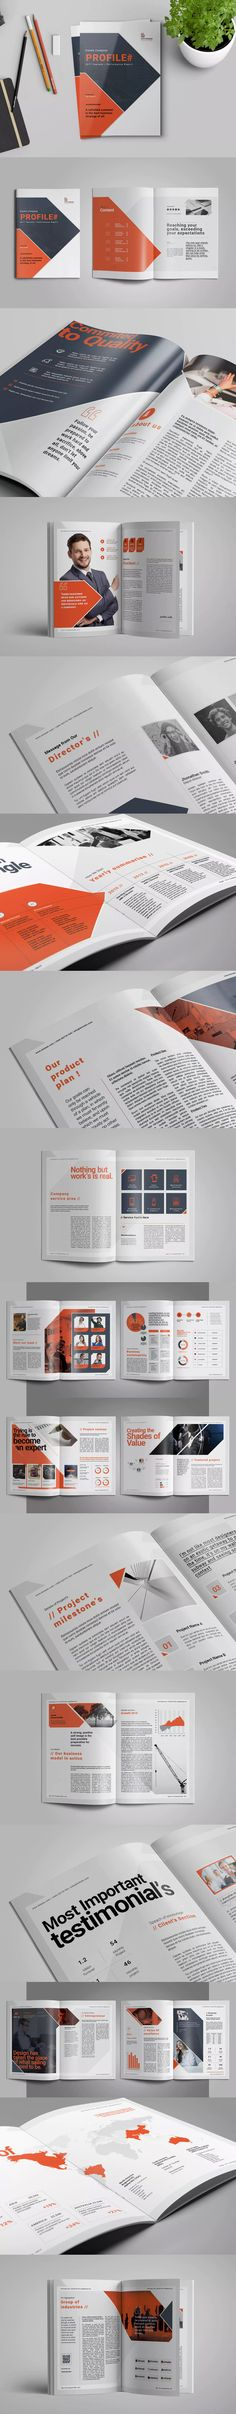 TM Company Profile Template InDesign INDD A4 Company Profile - profile company template